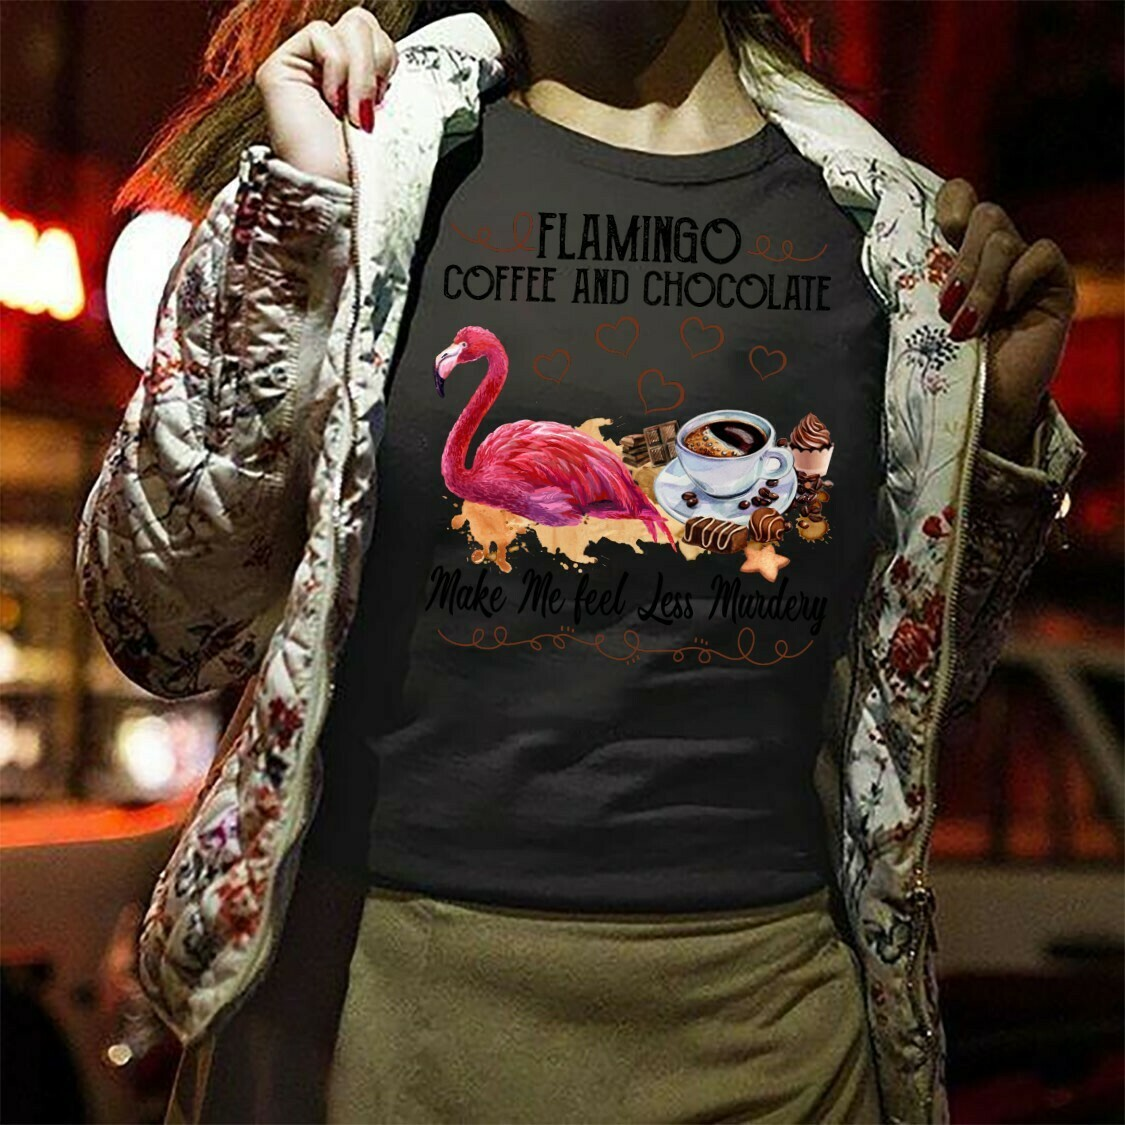 Flamingo Coffee And Chocolate Make Me Feel Less Murdery gift for Who Addicted To Coffee,Chocolate, Lover Flamingo coffee chocolate shirt Long Sleeve Sweatshirt Hoodie Jolly Family Gifts